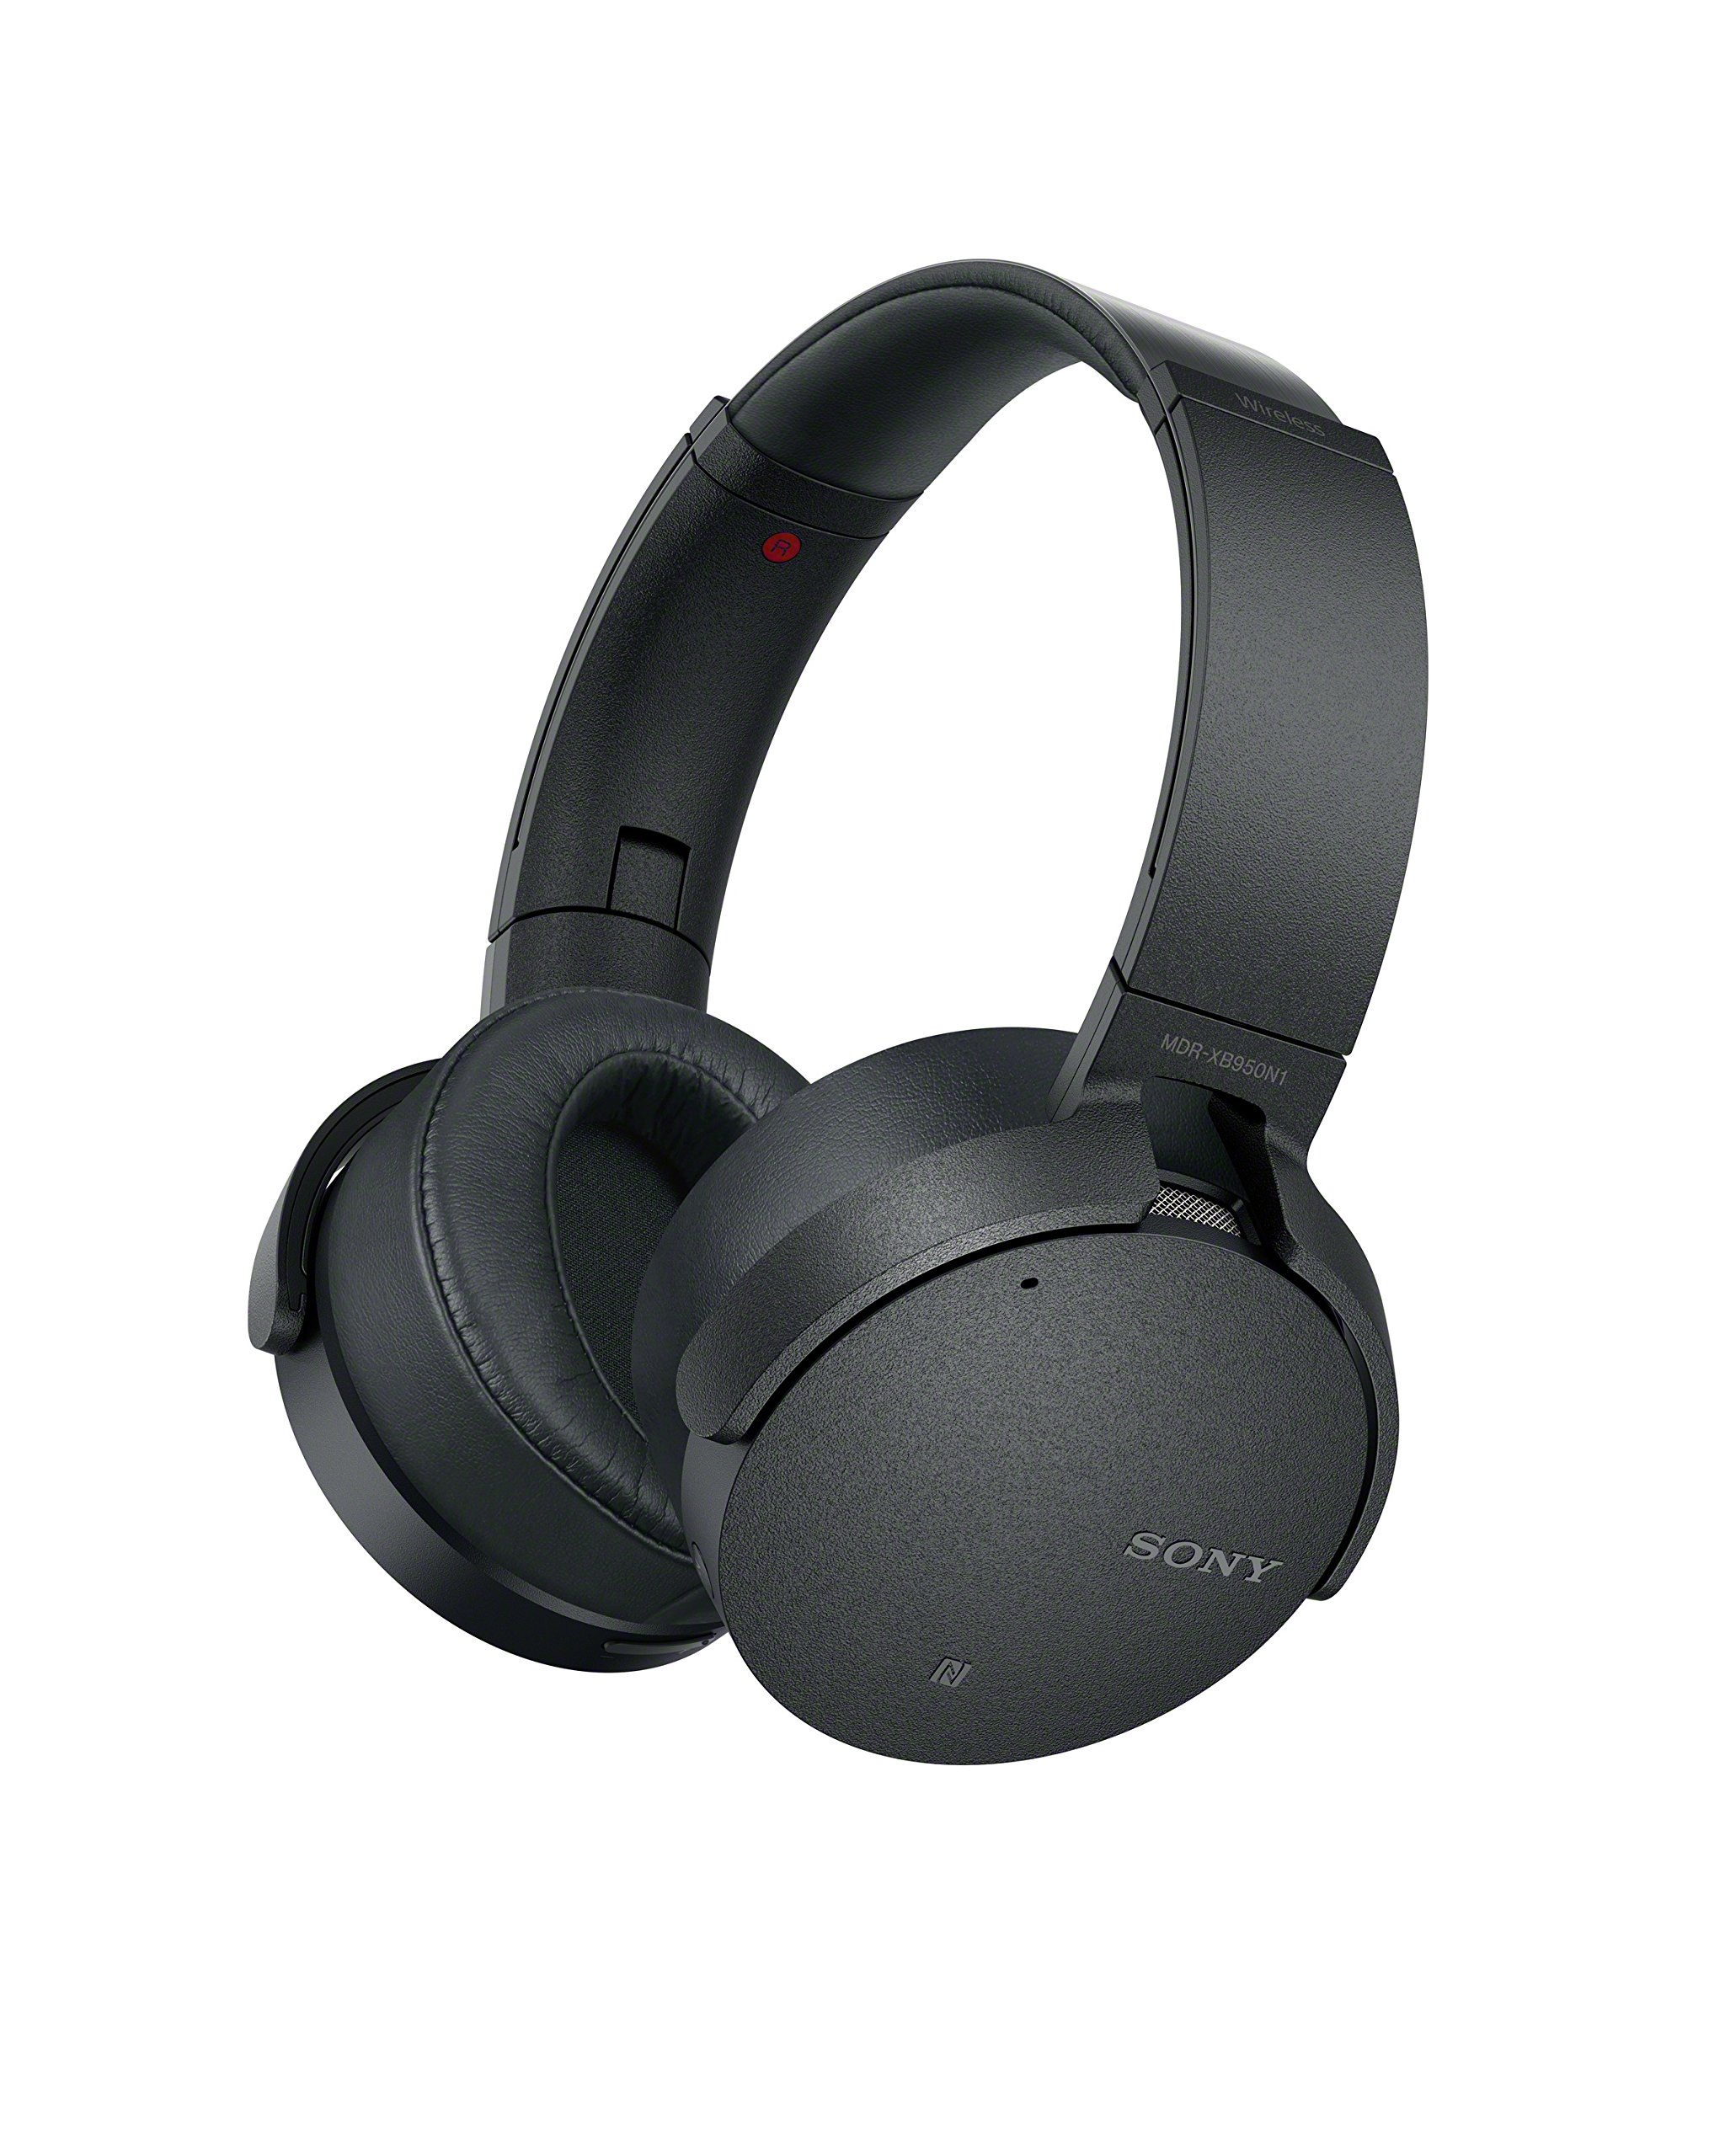 Sony 950N1 Extra Bass Wireless Bluetooth Noise Cancelling Headphones - XB950N1 (Certified Refurbished)